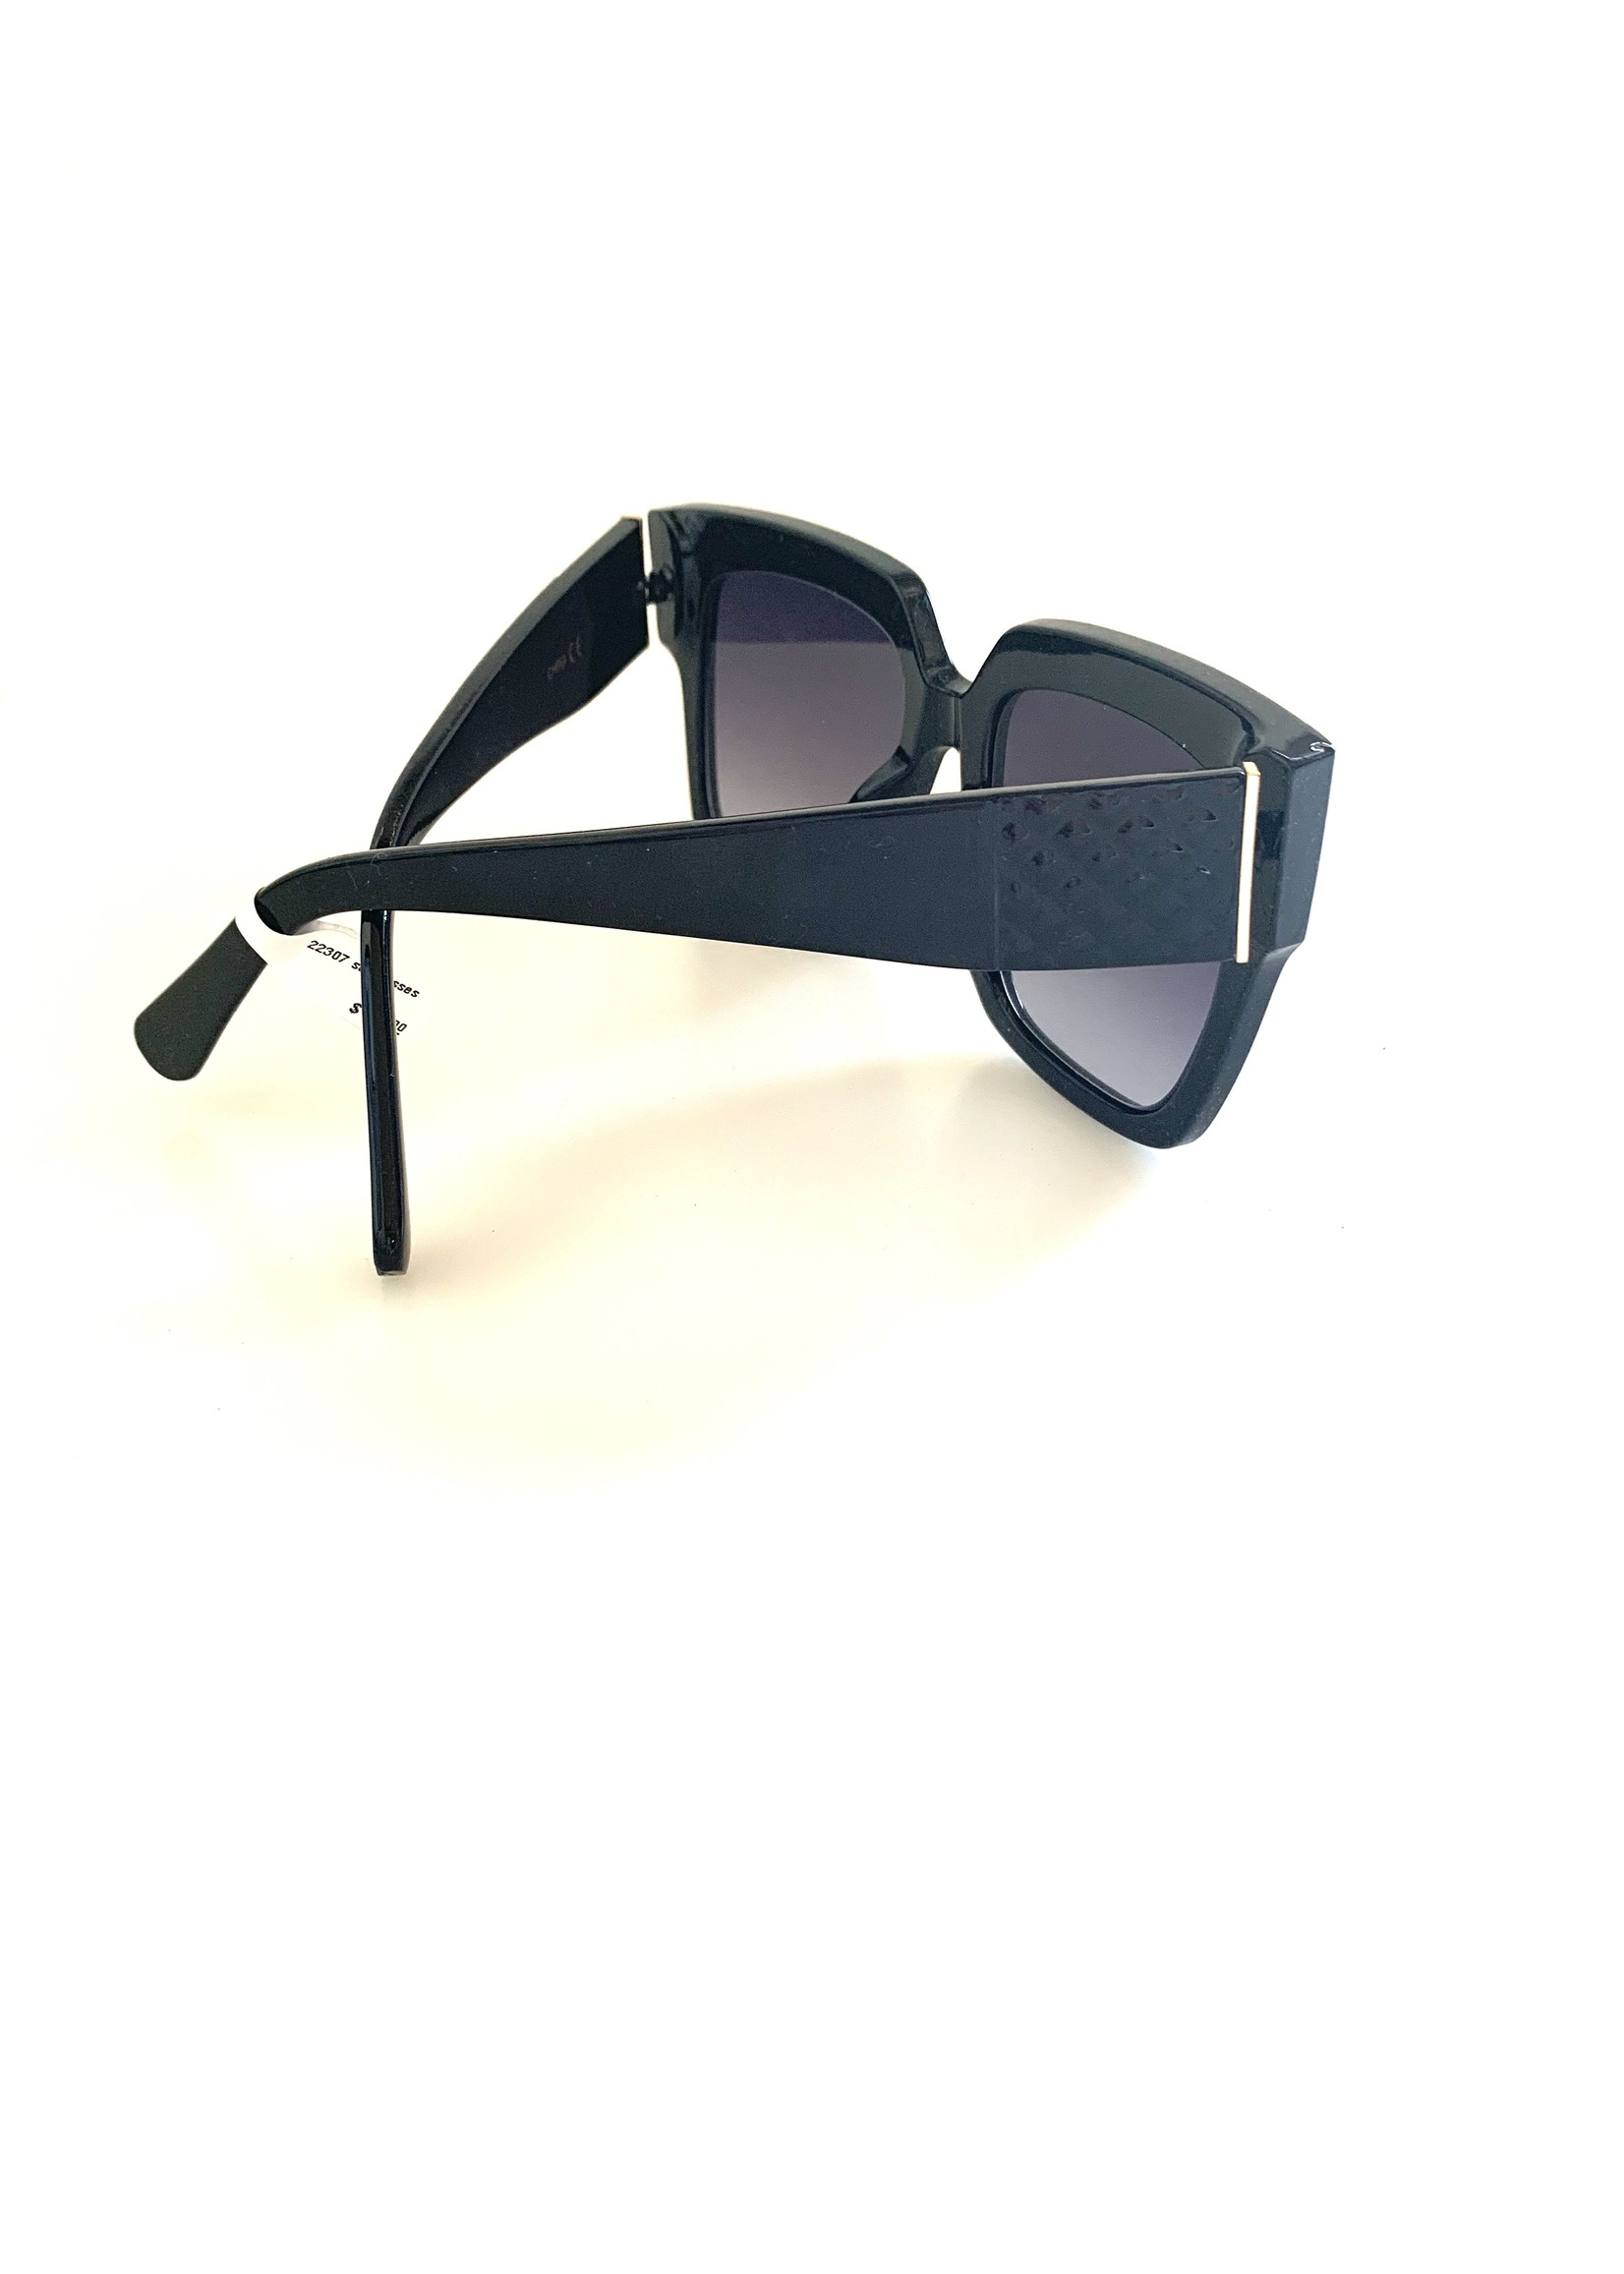 22307 sunglasses